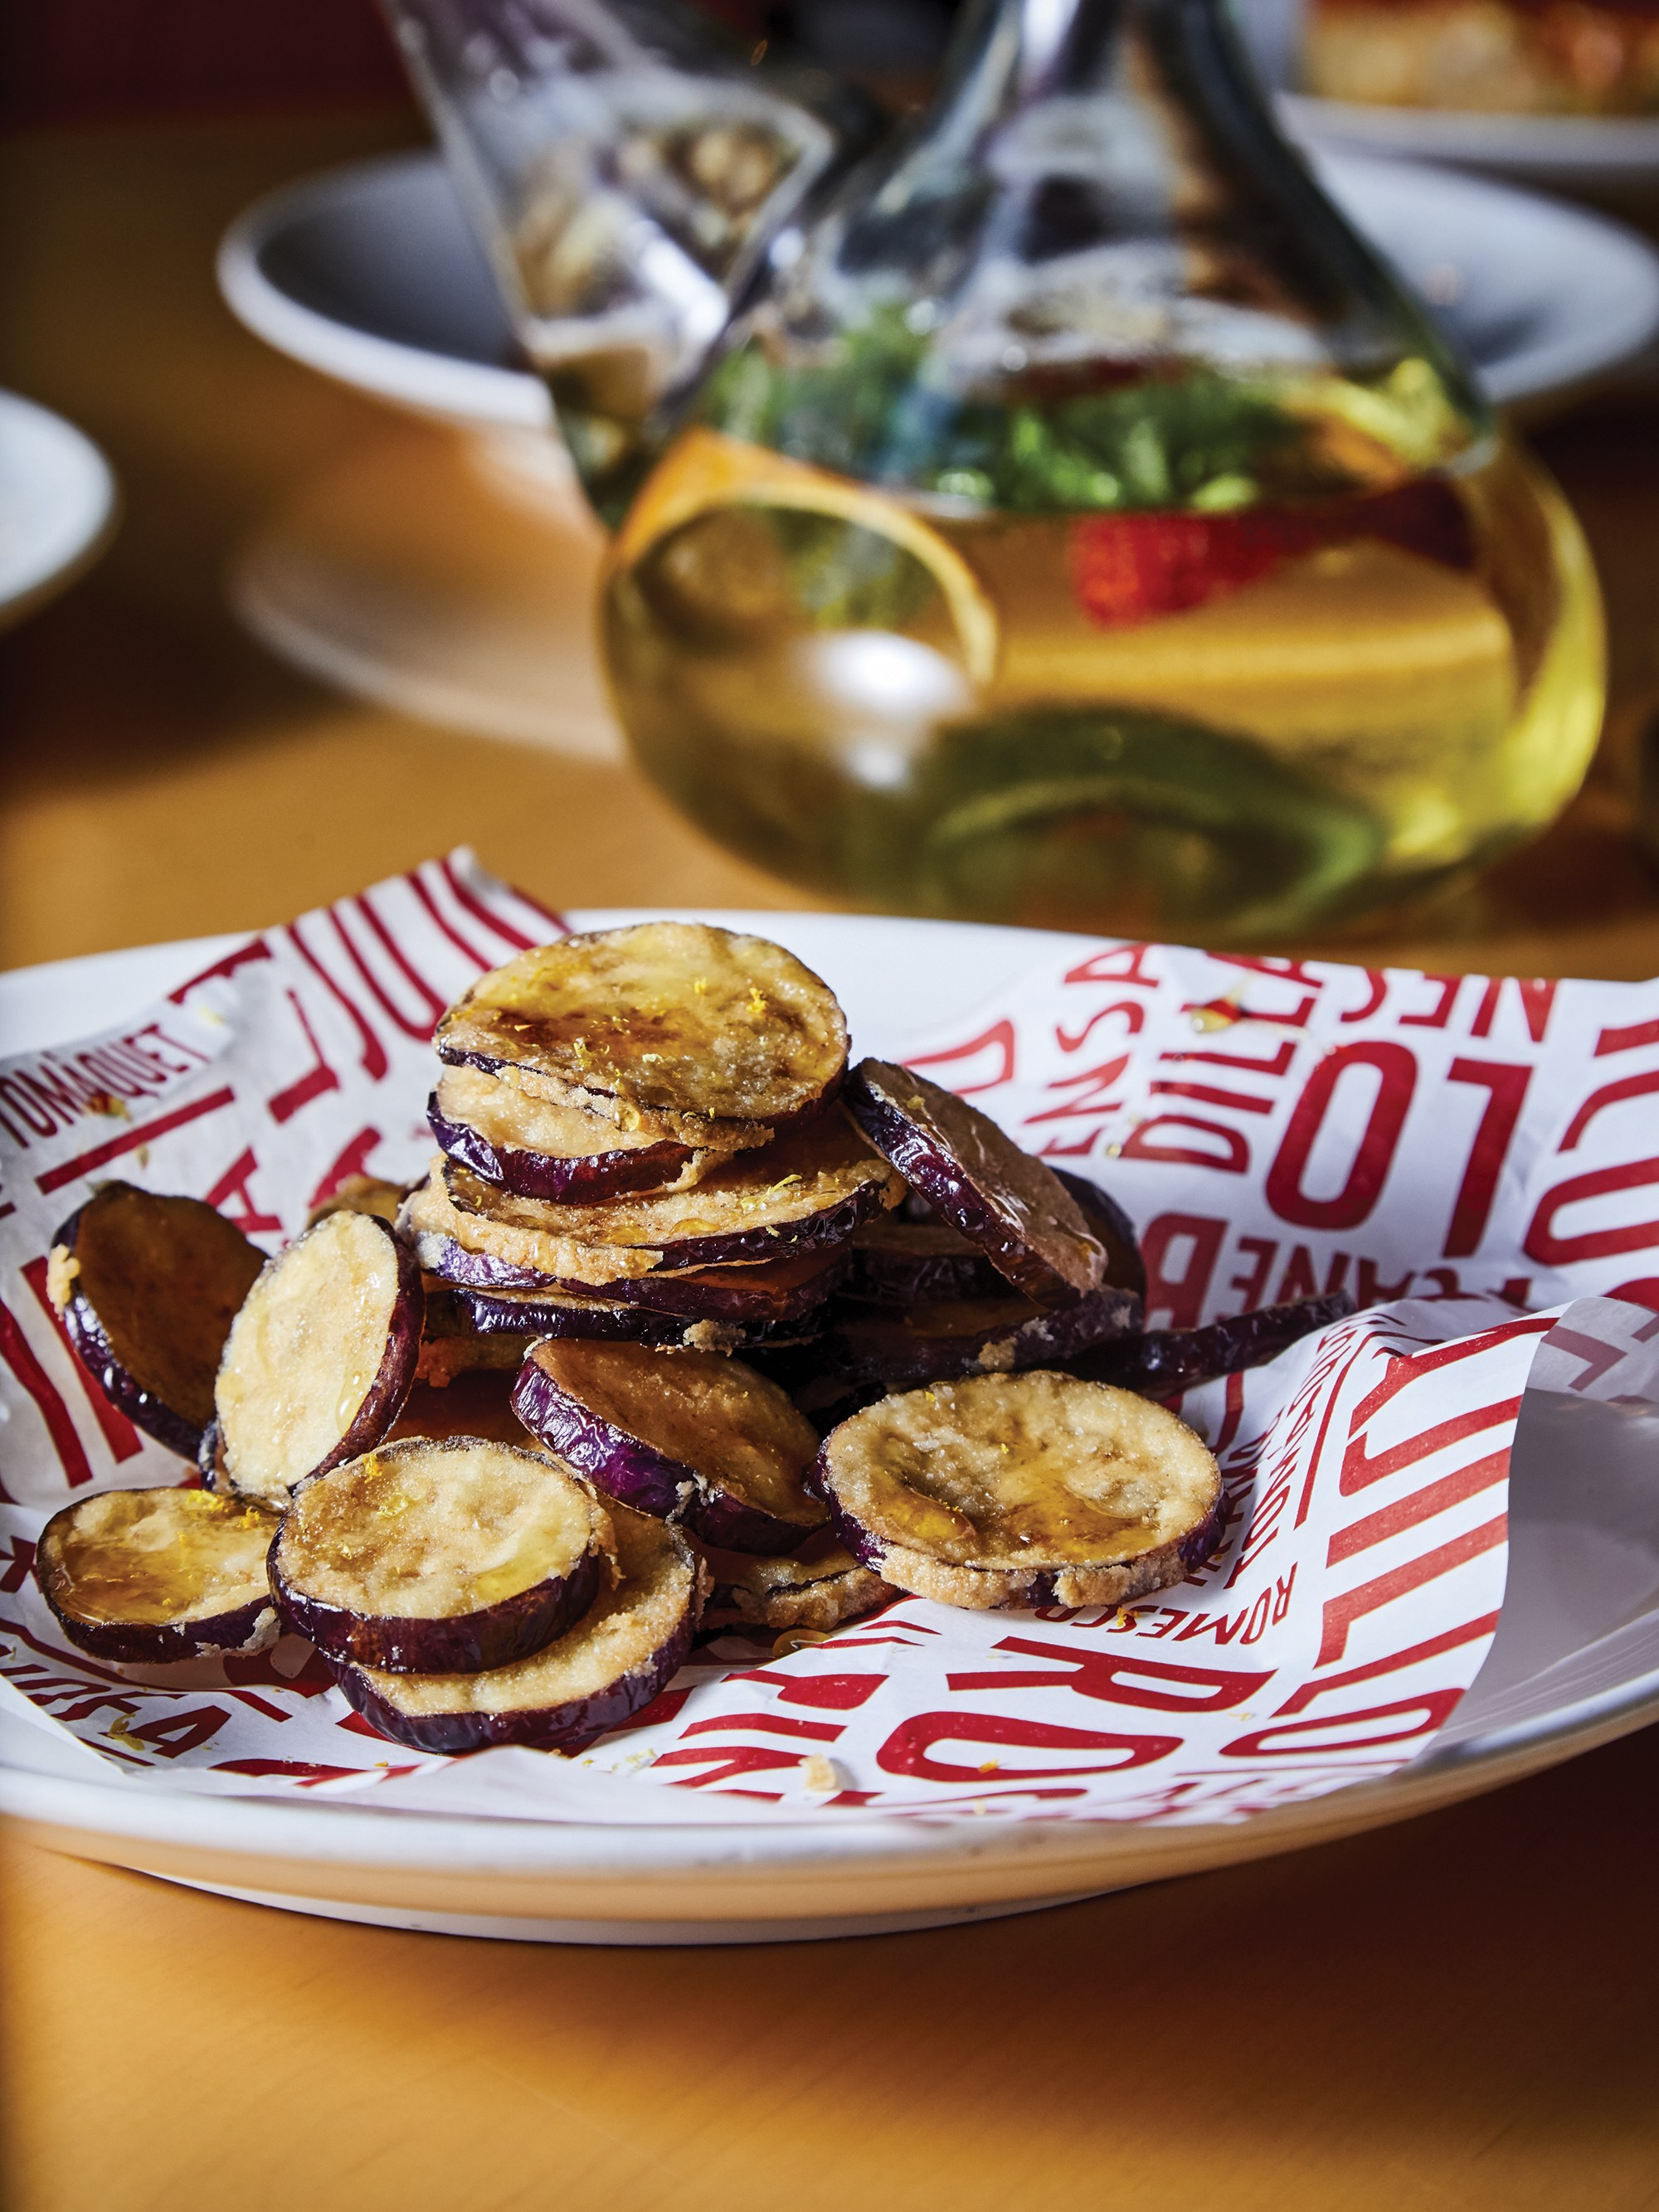 Fried Eggplants with Honey (Berenjenas con Miel)